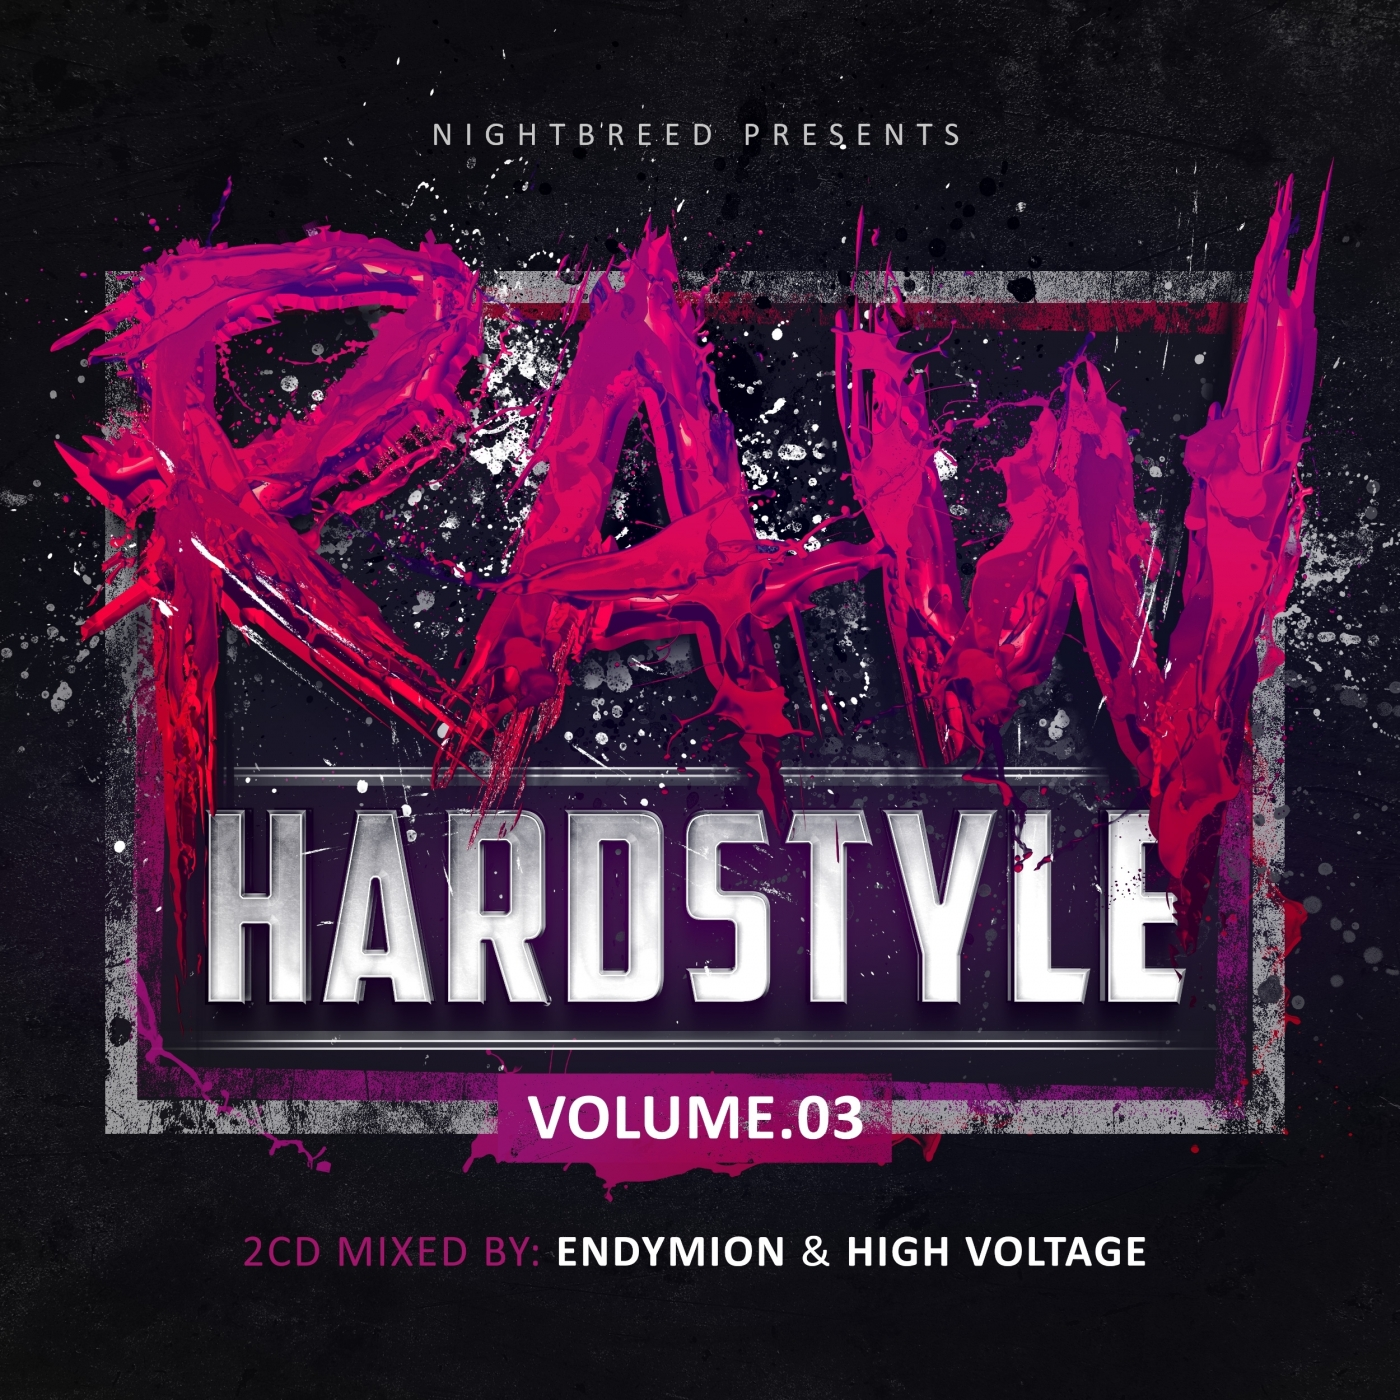 Raw hardstyle vol 3 endymion high voltage mydcd009 cd for Hardstyle house